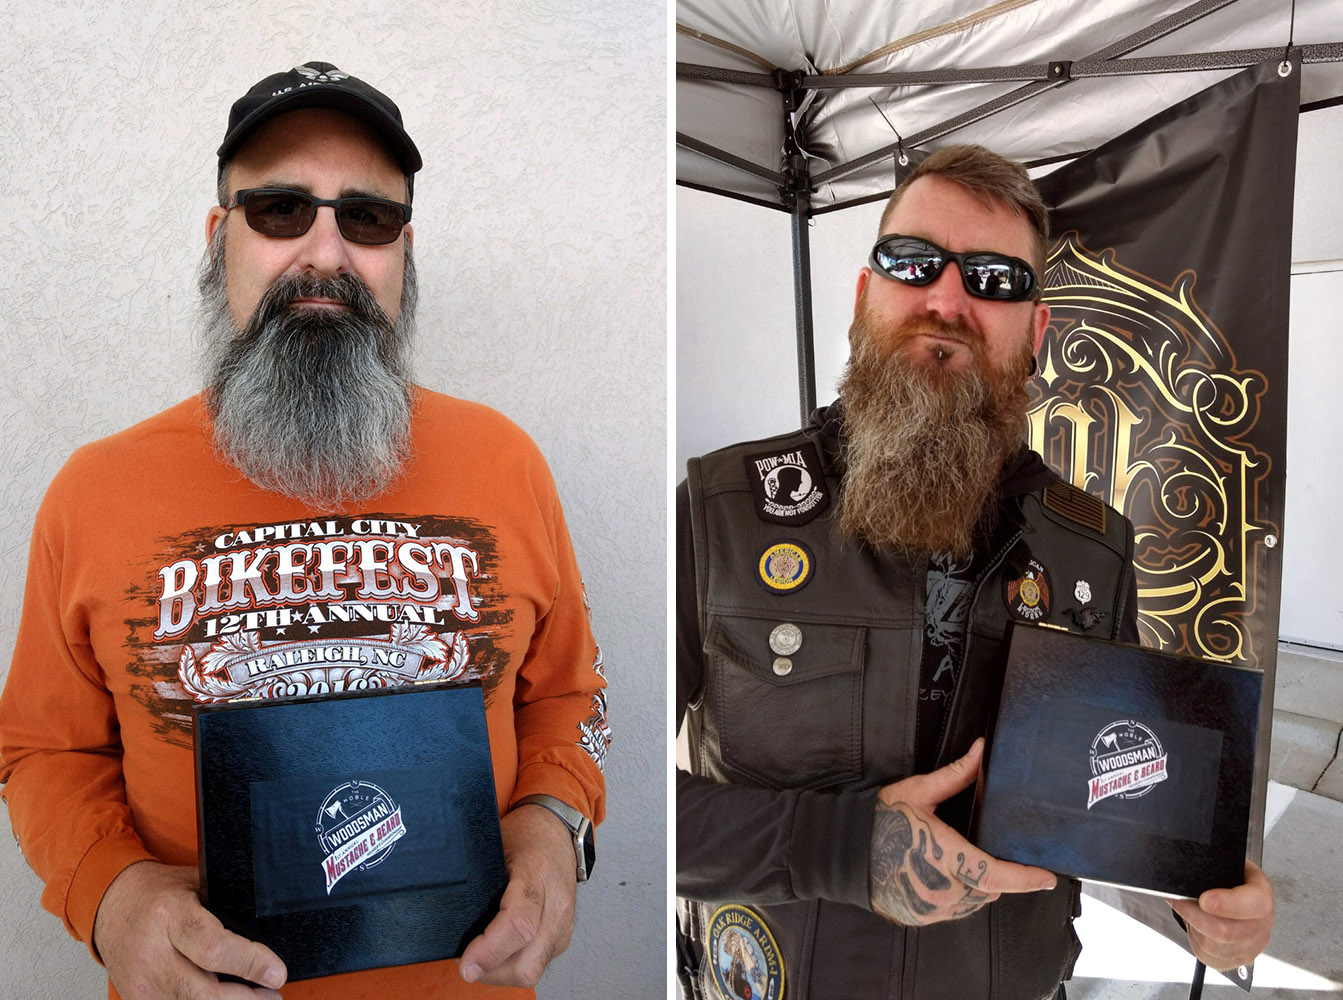 mens grooming, best of raleigh, Beard Championship, beard oil, raleigh, harley davidson,